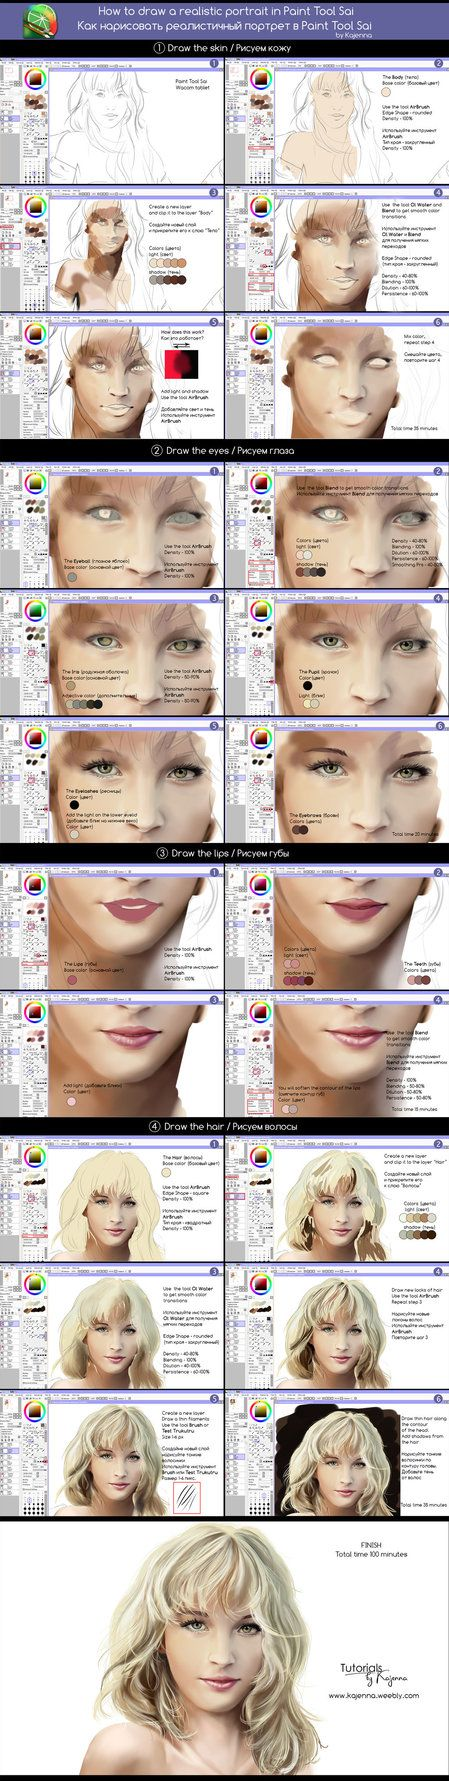 How to draw a realistic portrait in Sai / Tutorial by Kajenna.deviantart.com on @DeviantArt